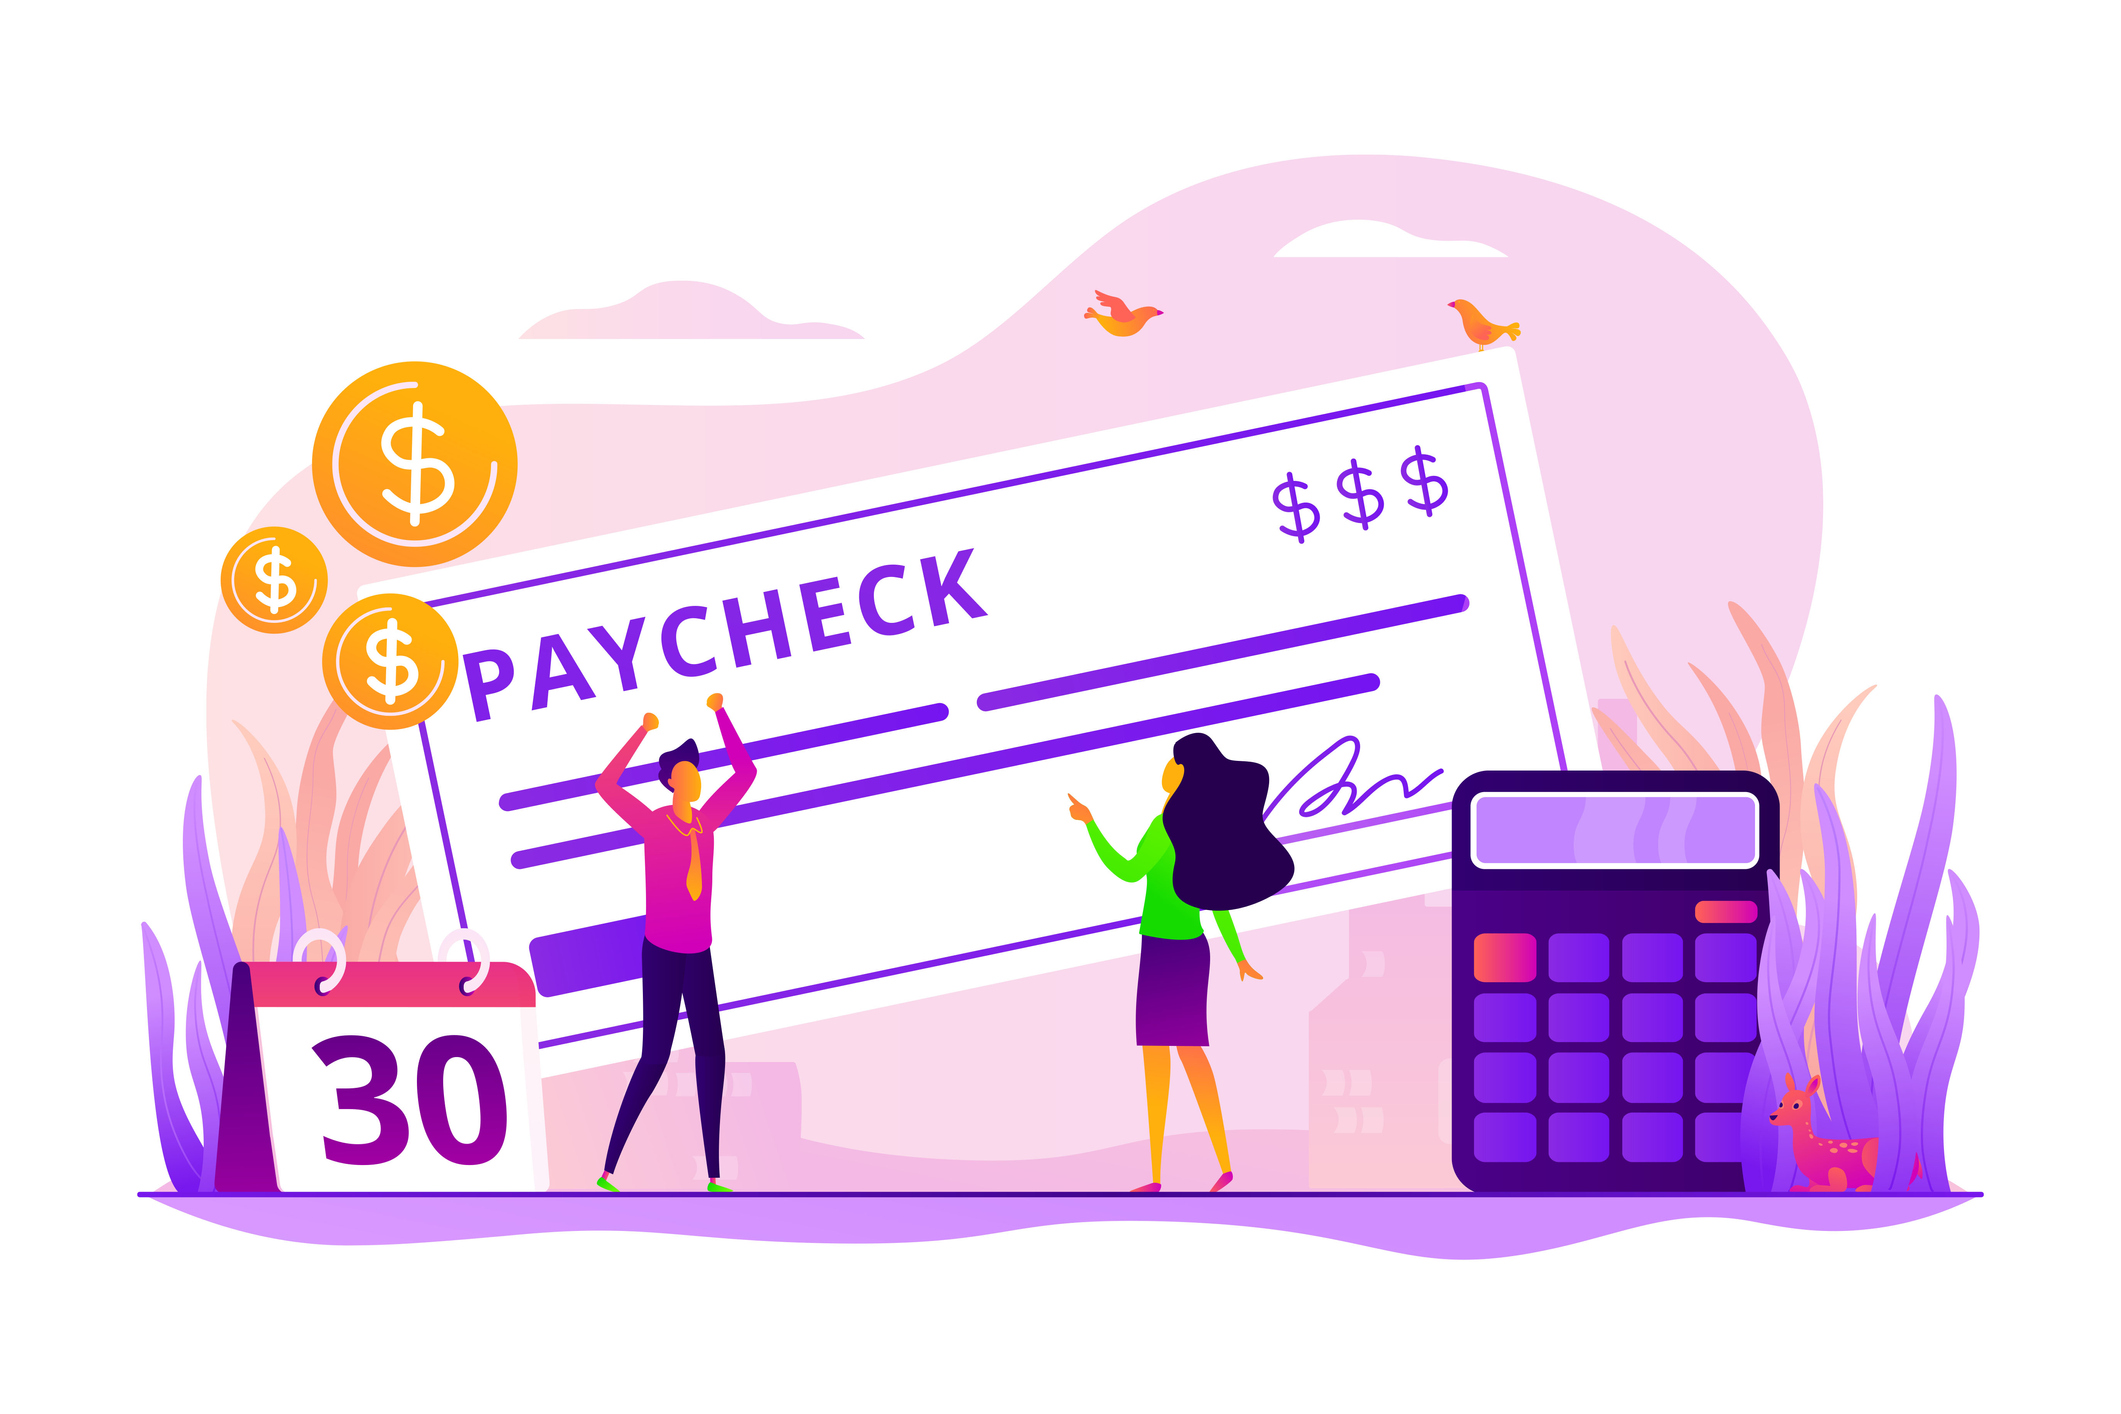 Paycheck Saving - Complete Controller